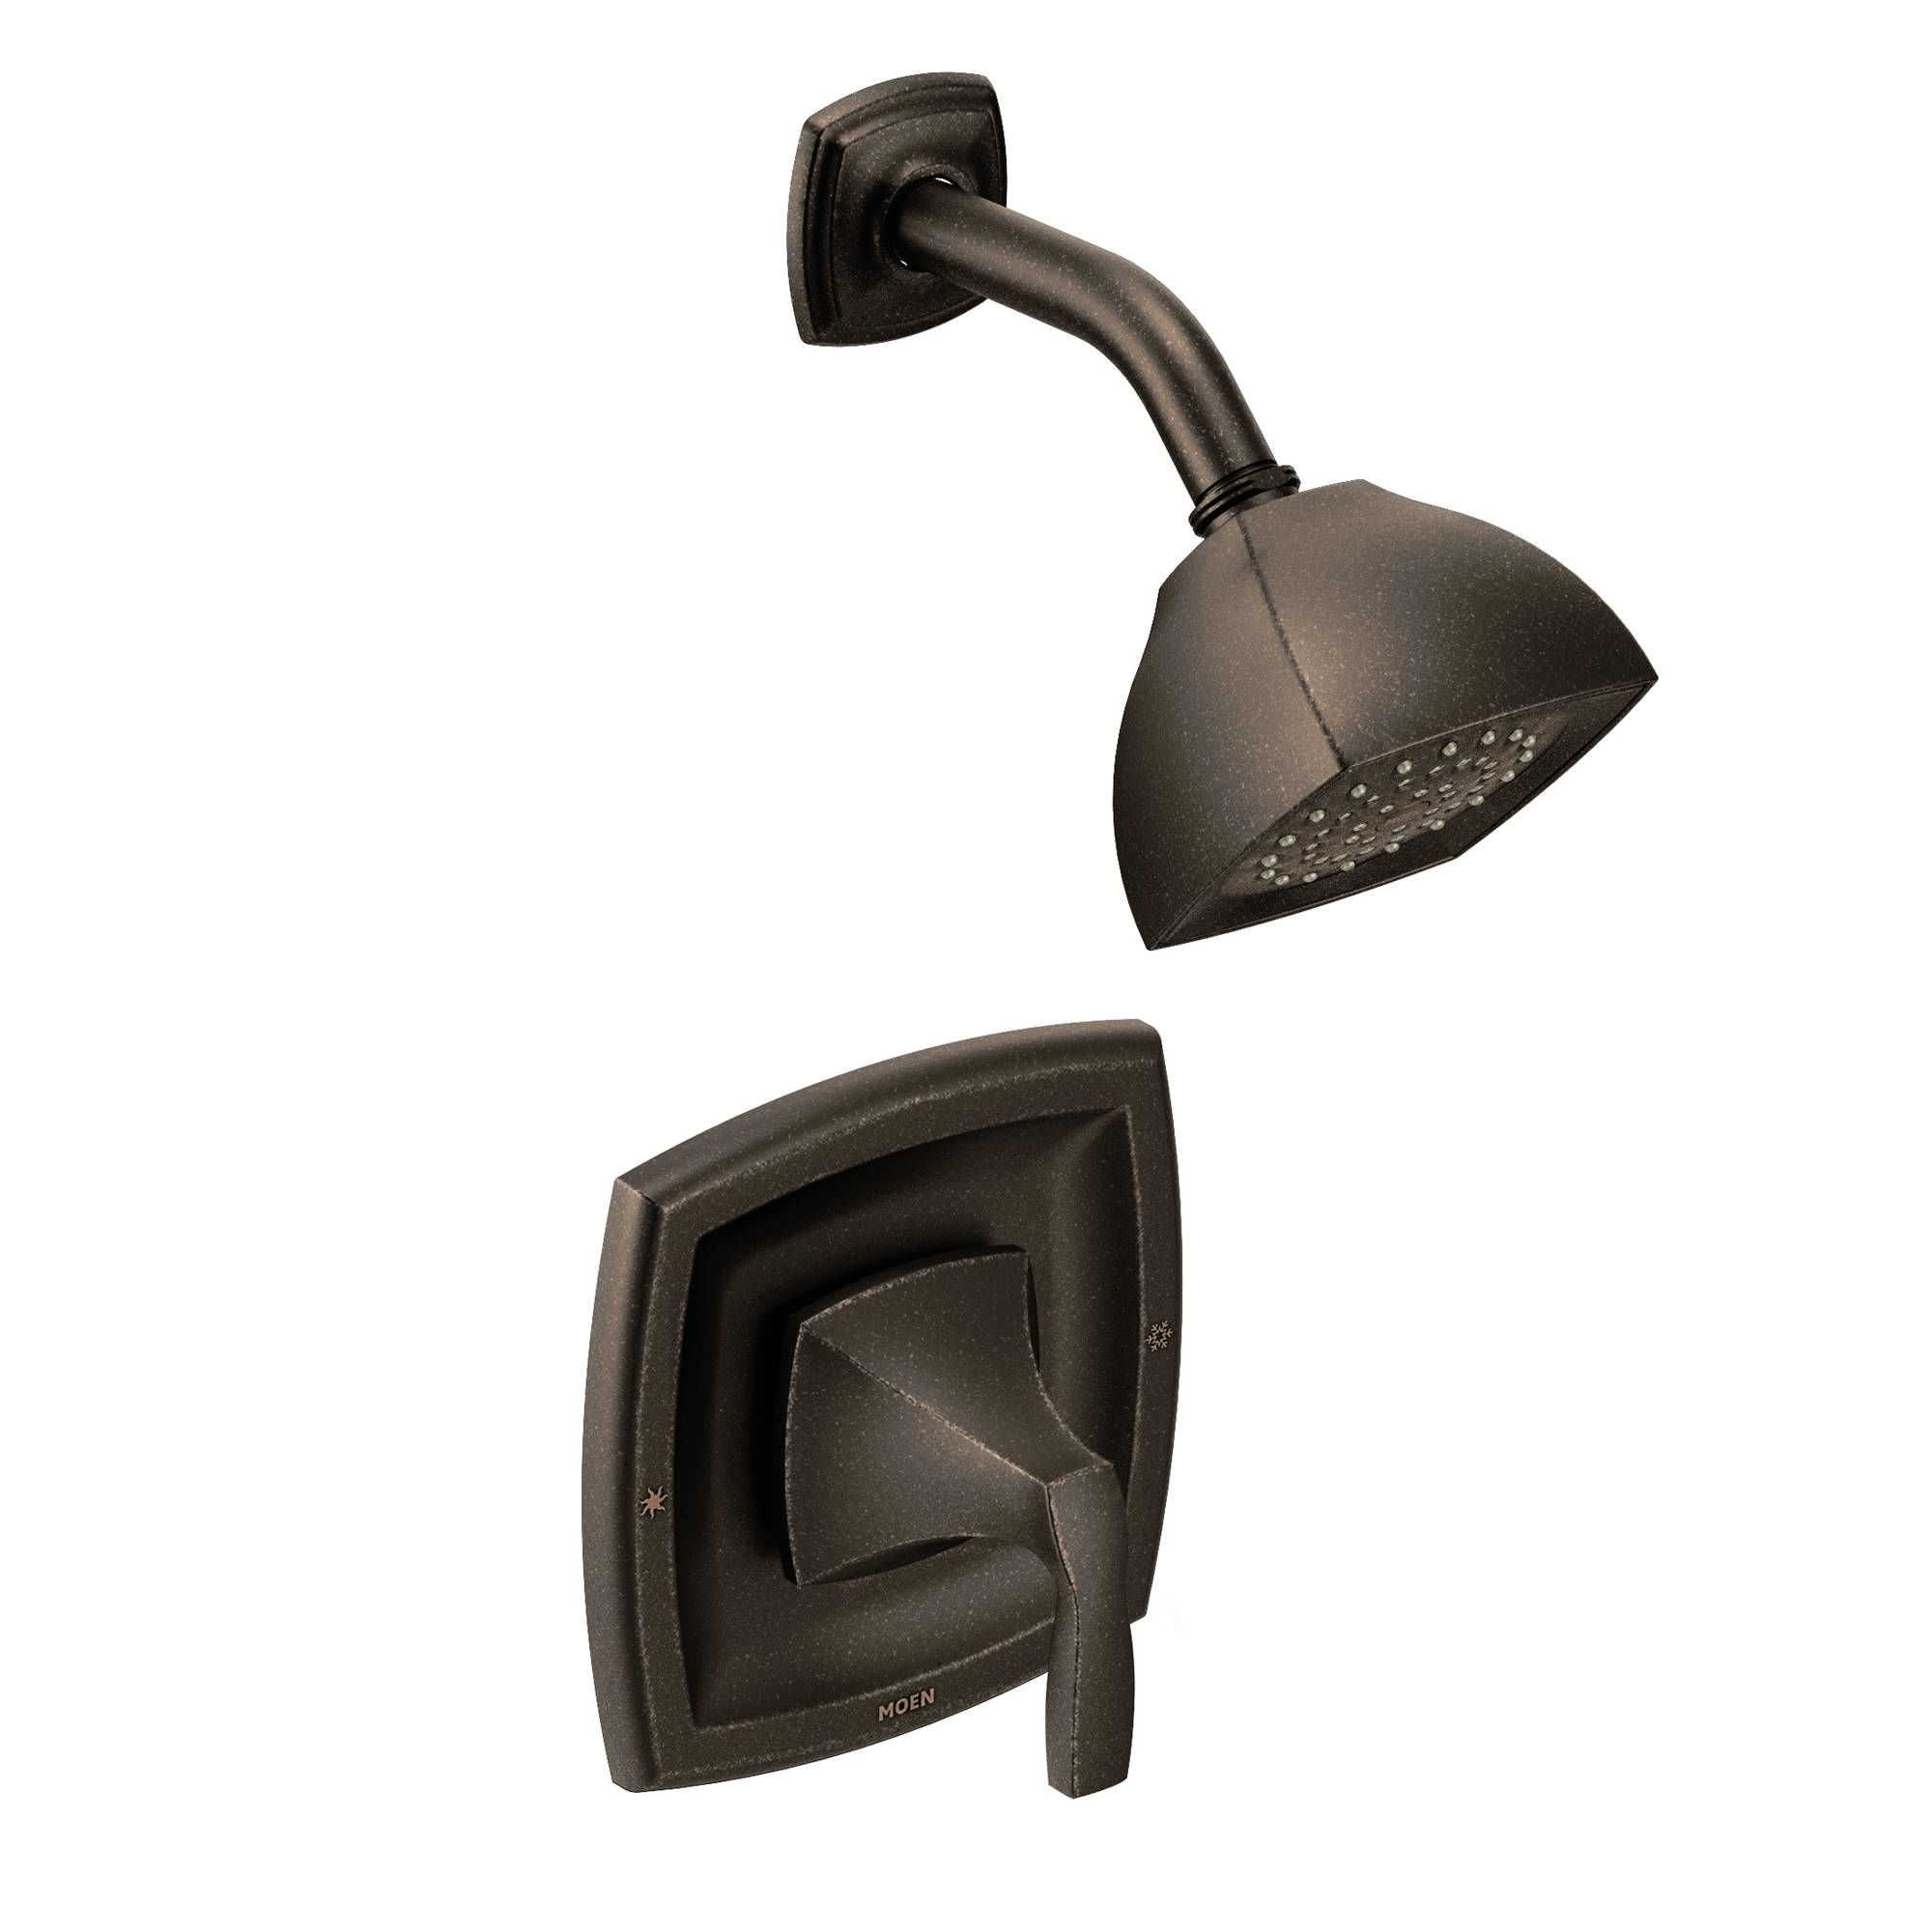 delta p handle faucet ob sink widespread rubbed porter bronze eco in oil faucets bathroom shower